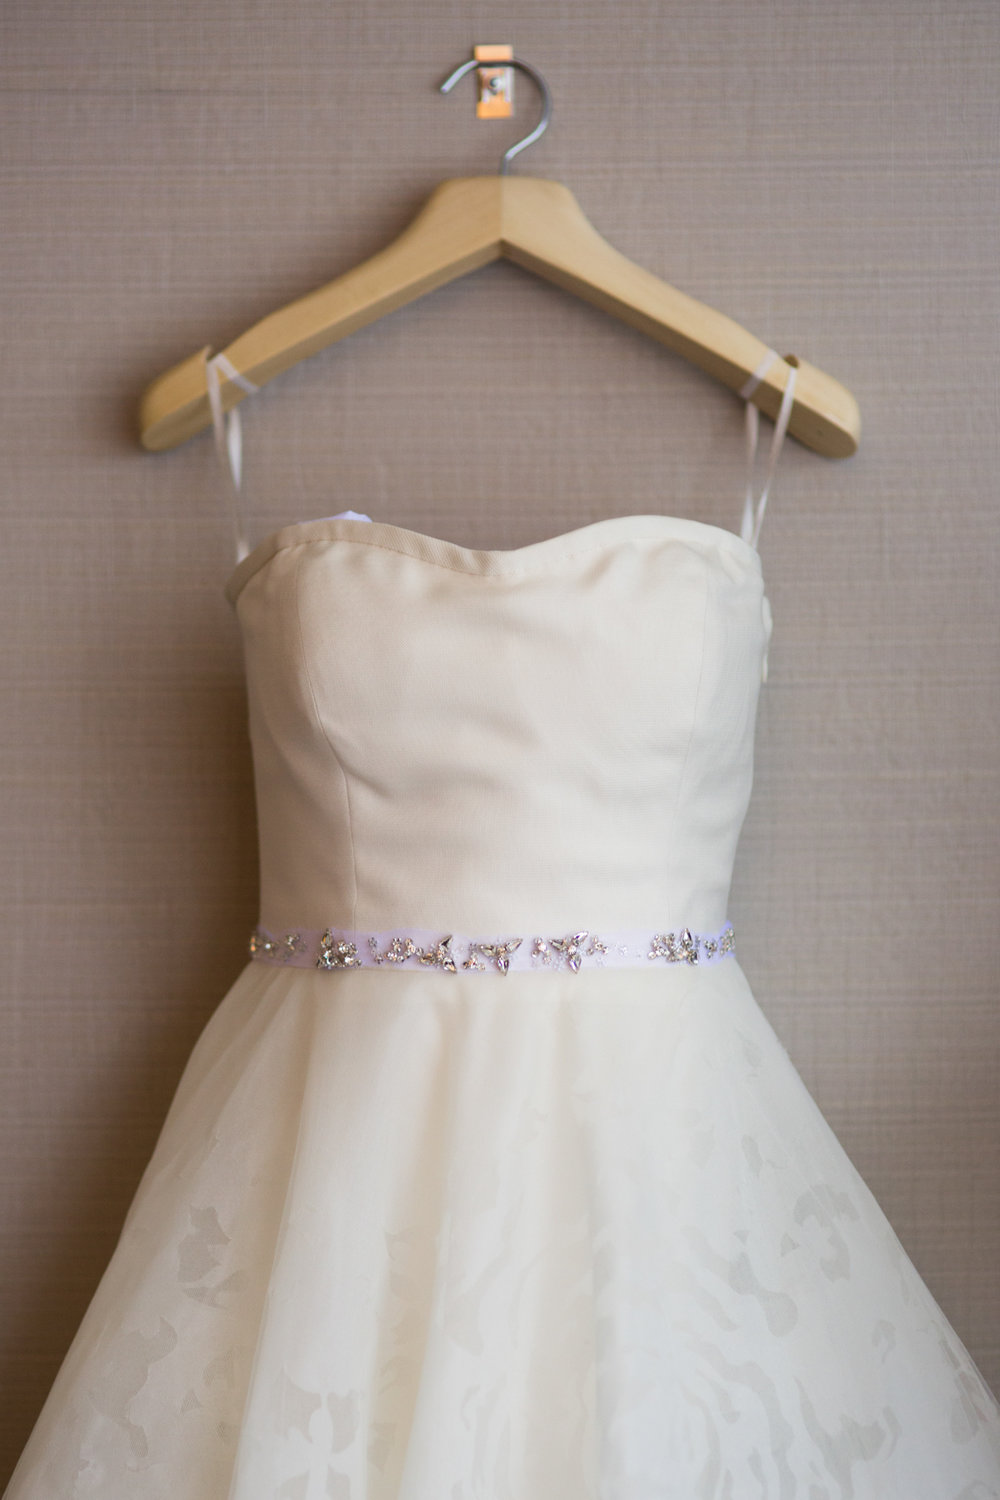 Bridal gown at Westin River North in downtown chicago.